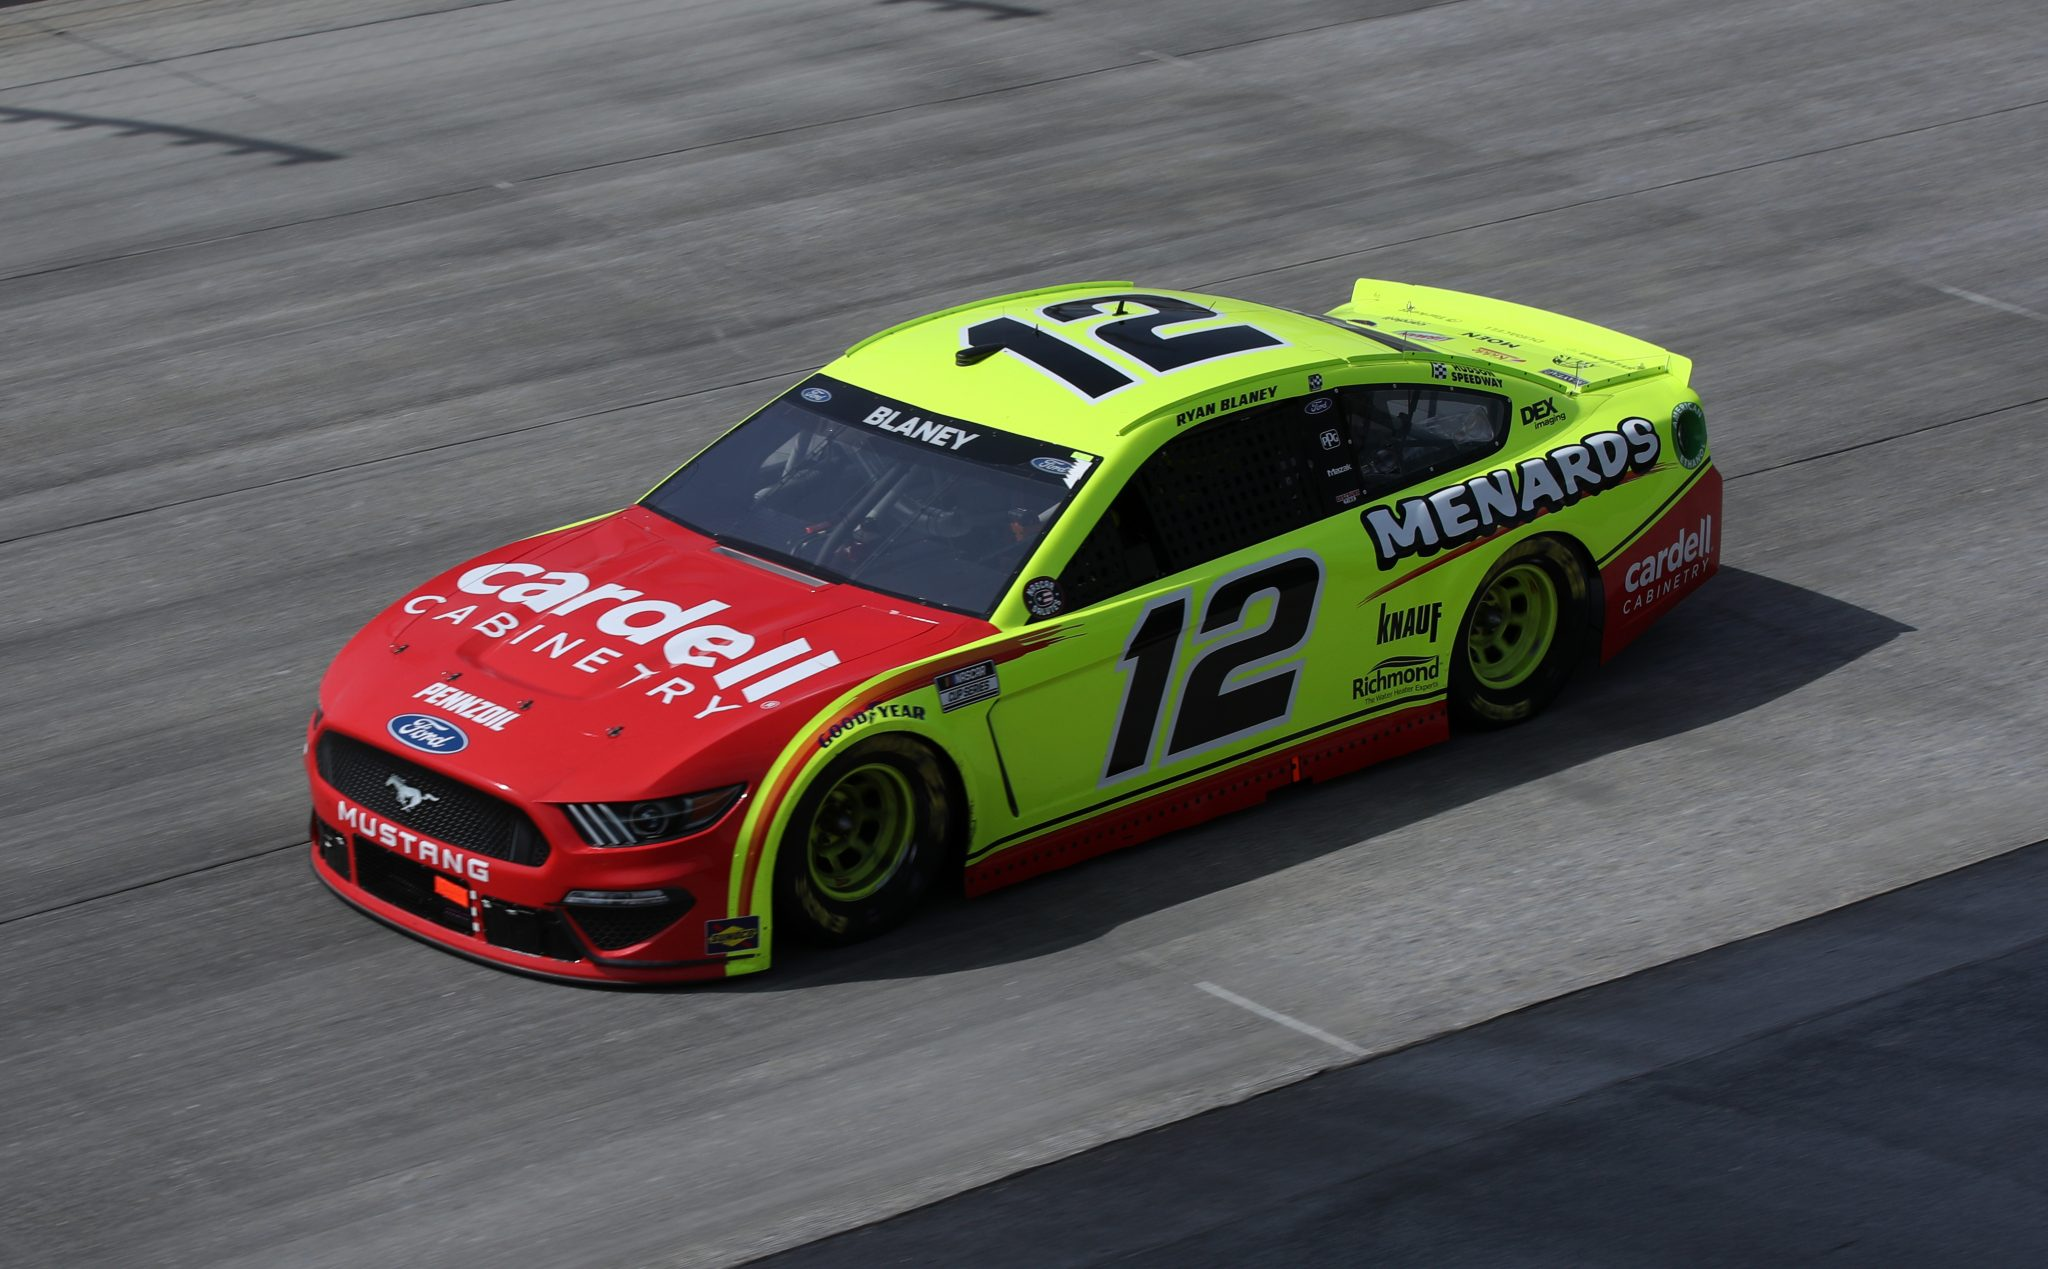 DOVER, DELAWARE - MAY 16: Ryan Blaney, driver of the #12 Menards/Cardell Cabinetry Ford, races during the NASCAR Cup Series Drydene 400 at Dover International Speedway on May 16, 2021 in Dover, Delaware. (Photo by Sean Gardner/Getty Images) | Getty Images